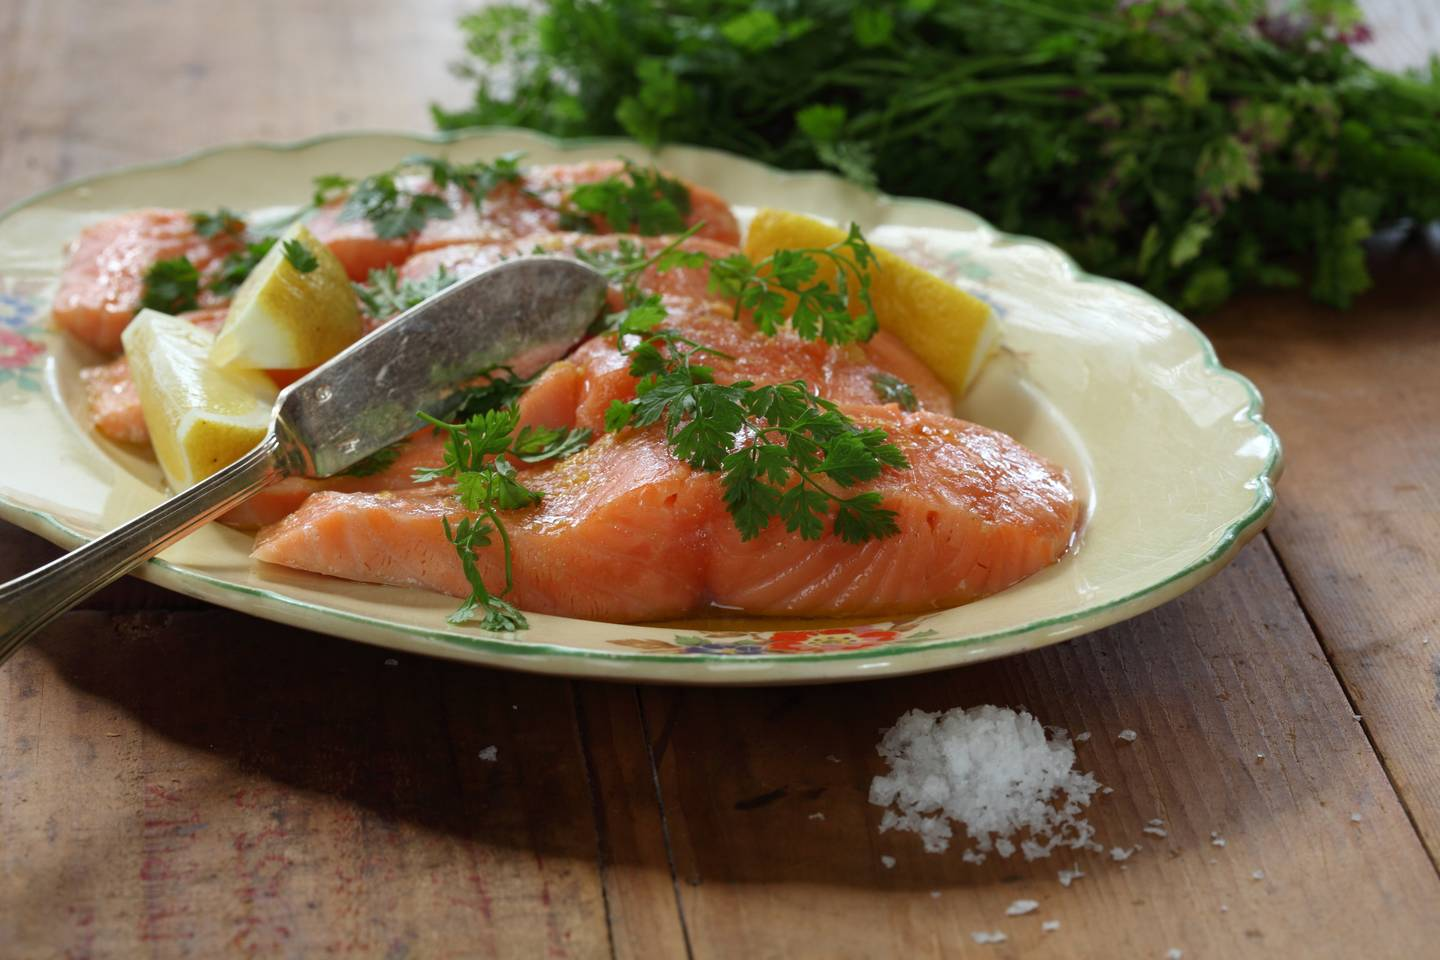 Salmon poached in extra virgin olive oil maggie beer for Frying fish in olive oil